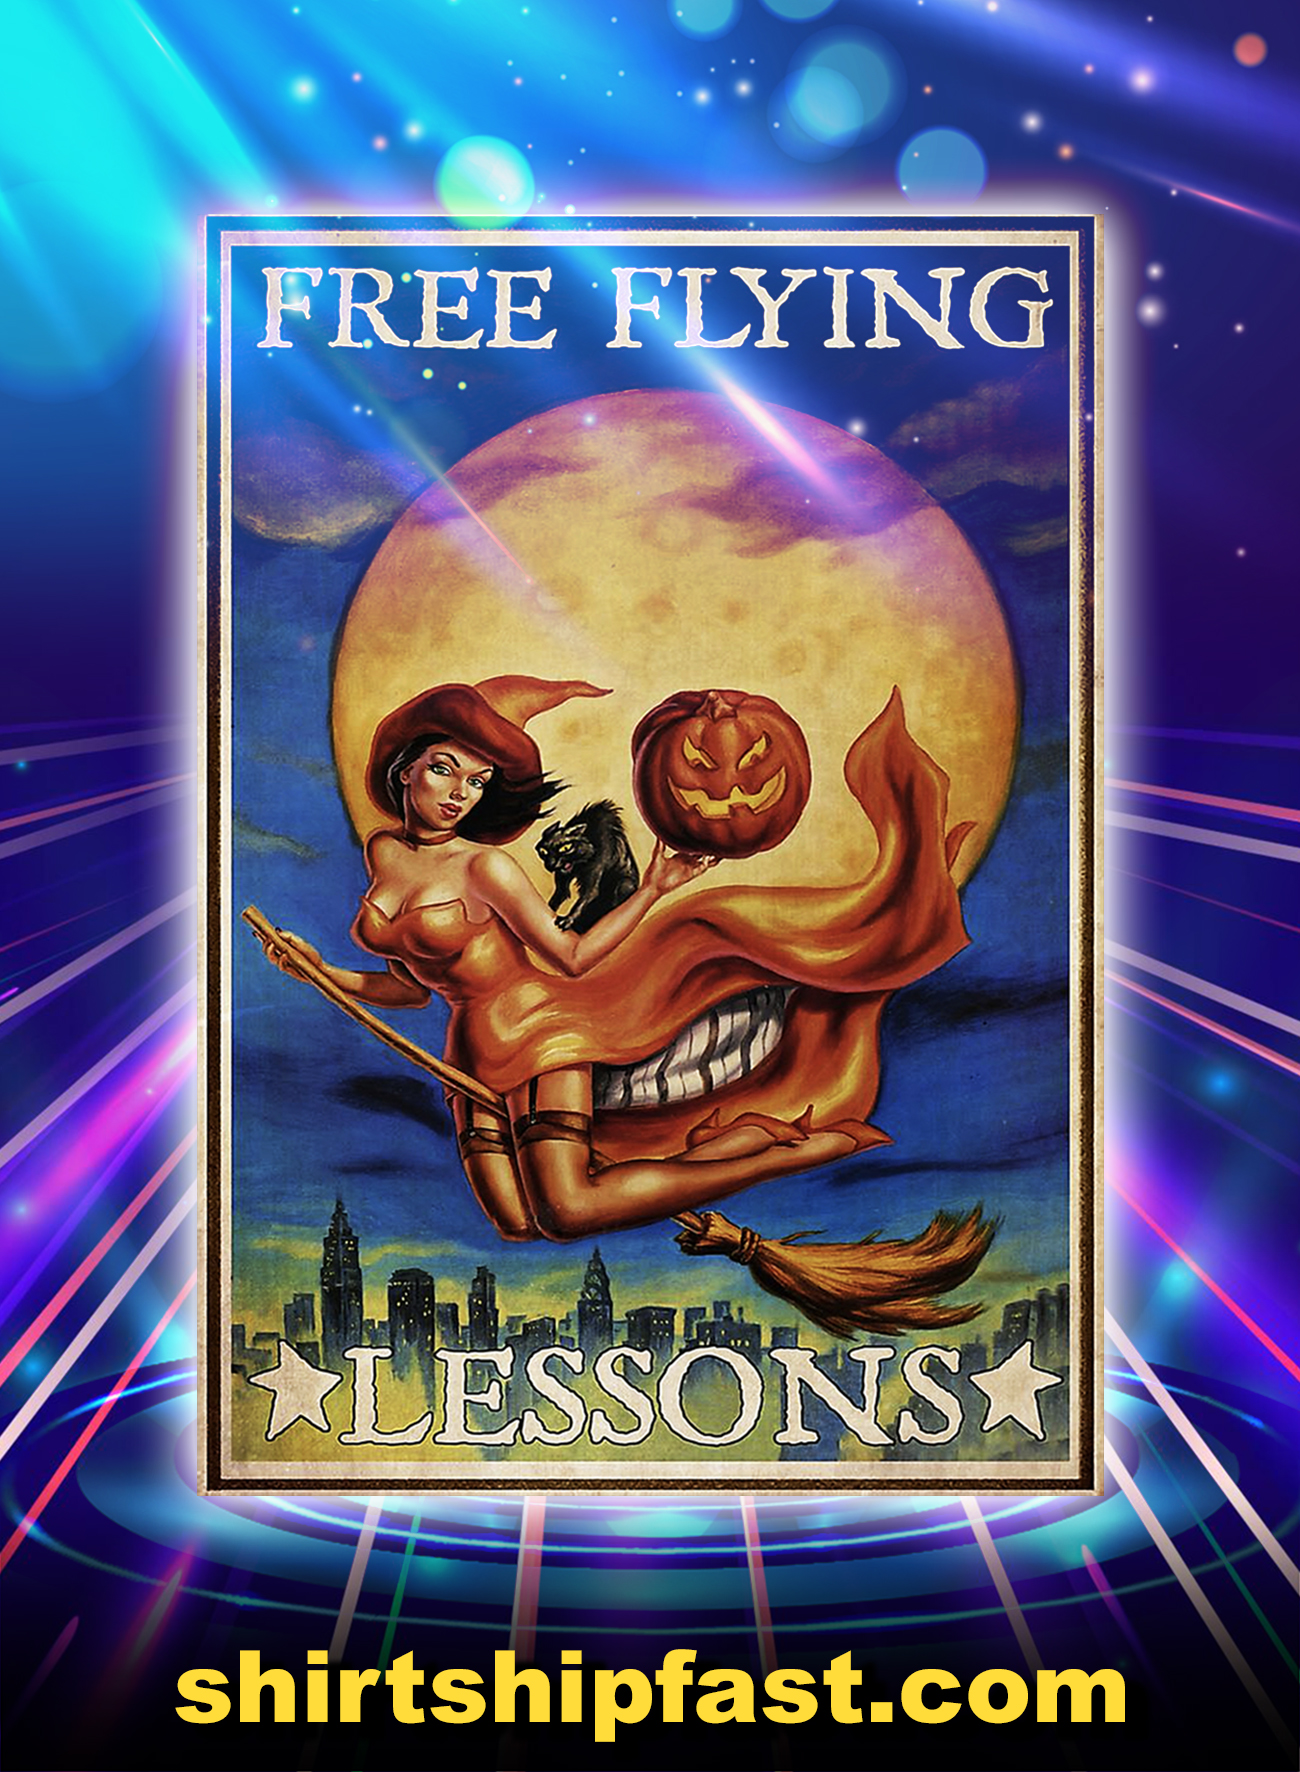 Free flying lessons poster - A1